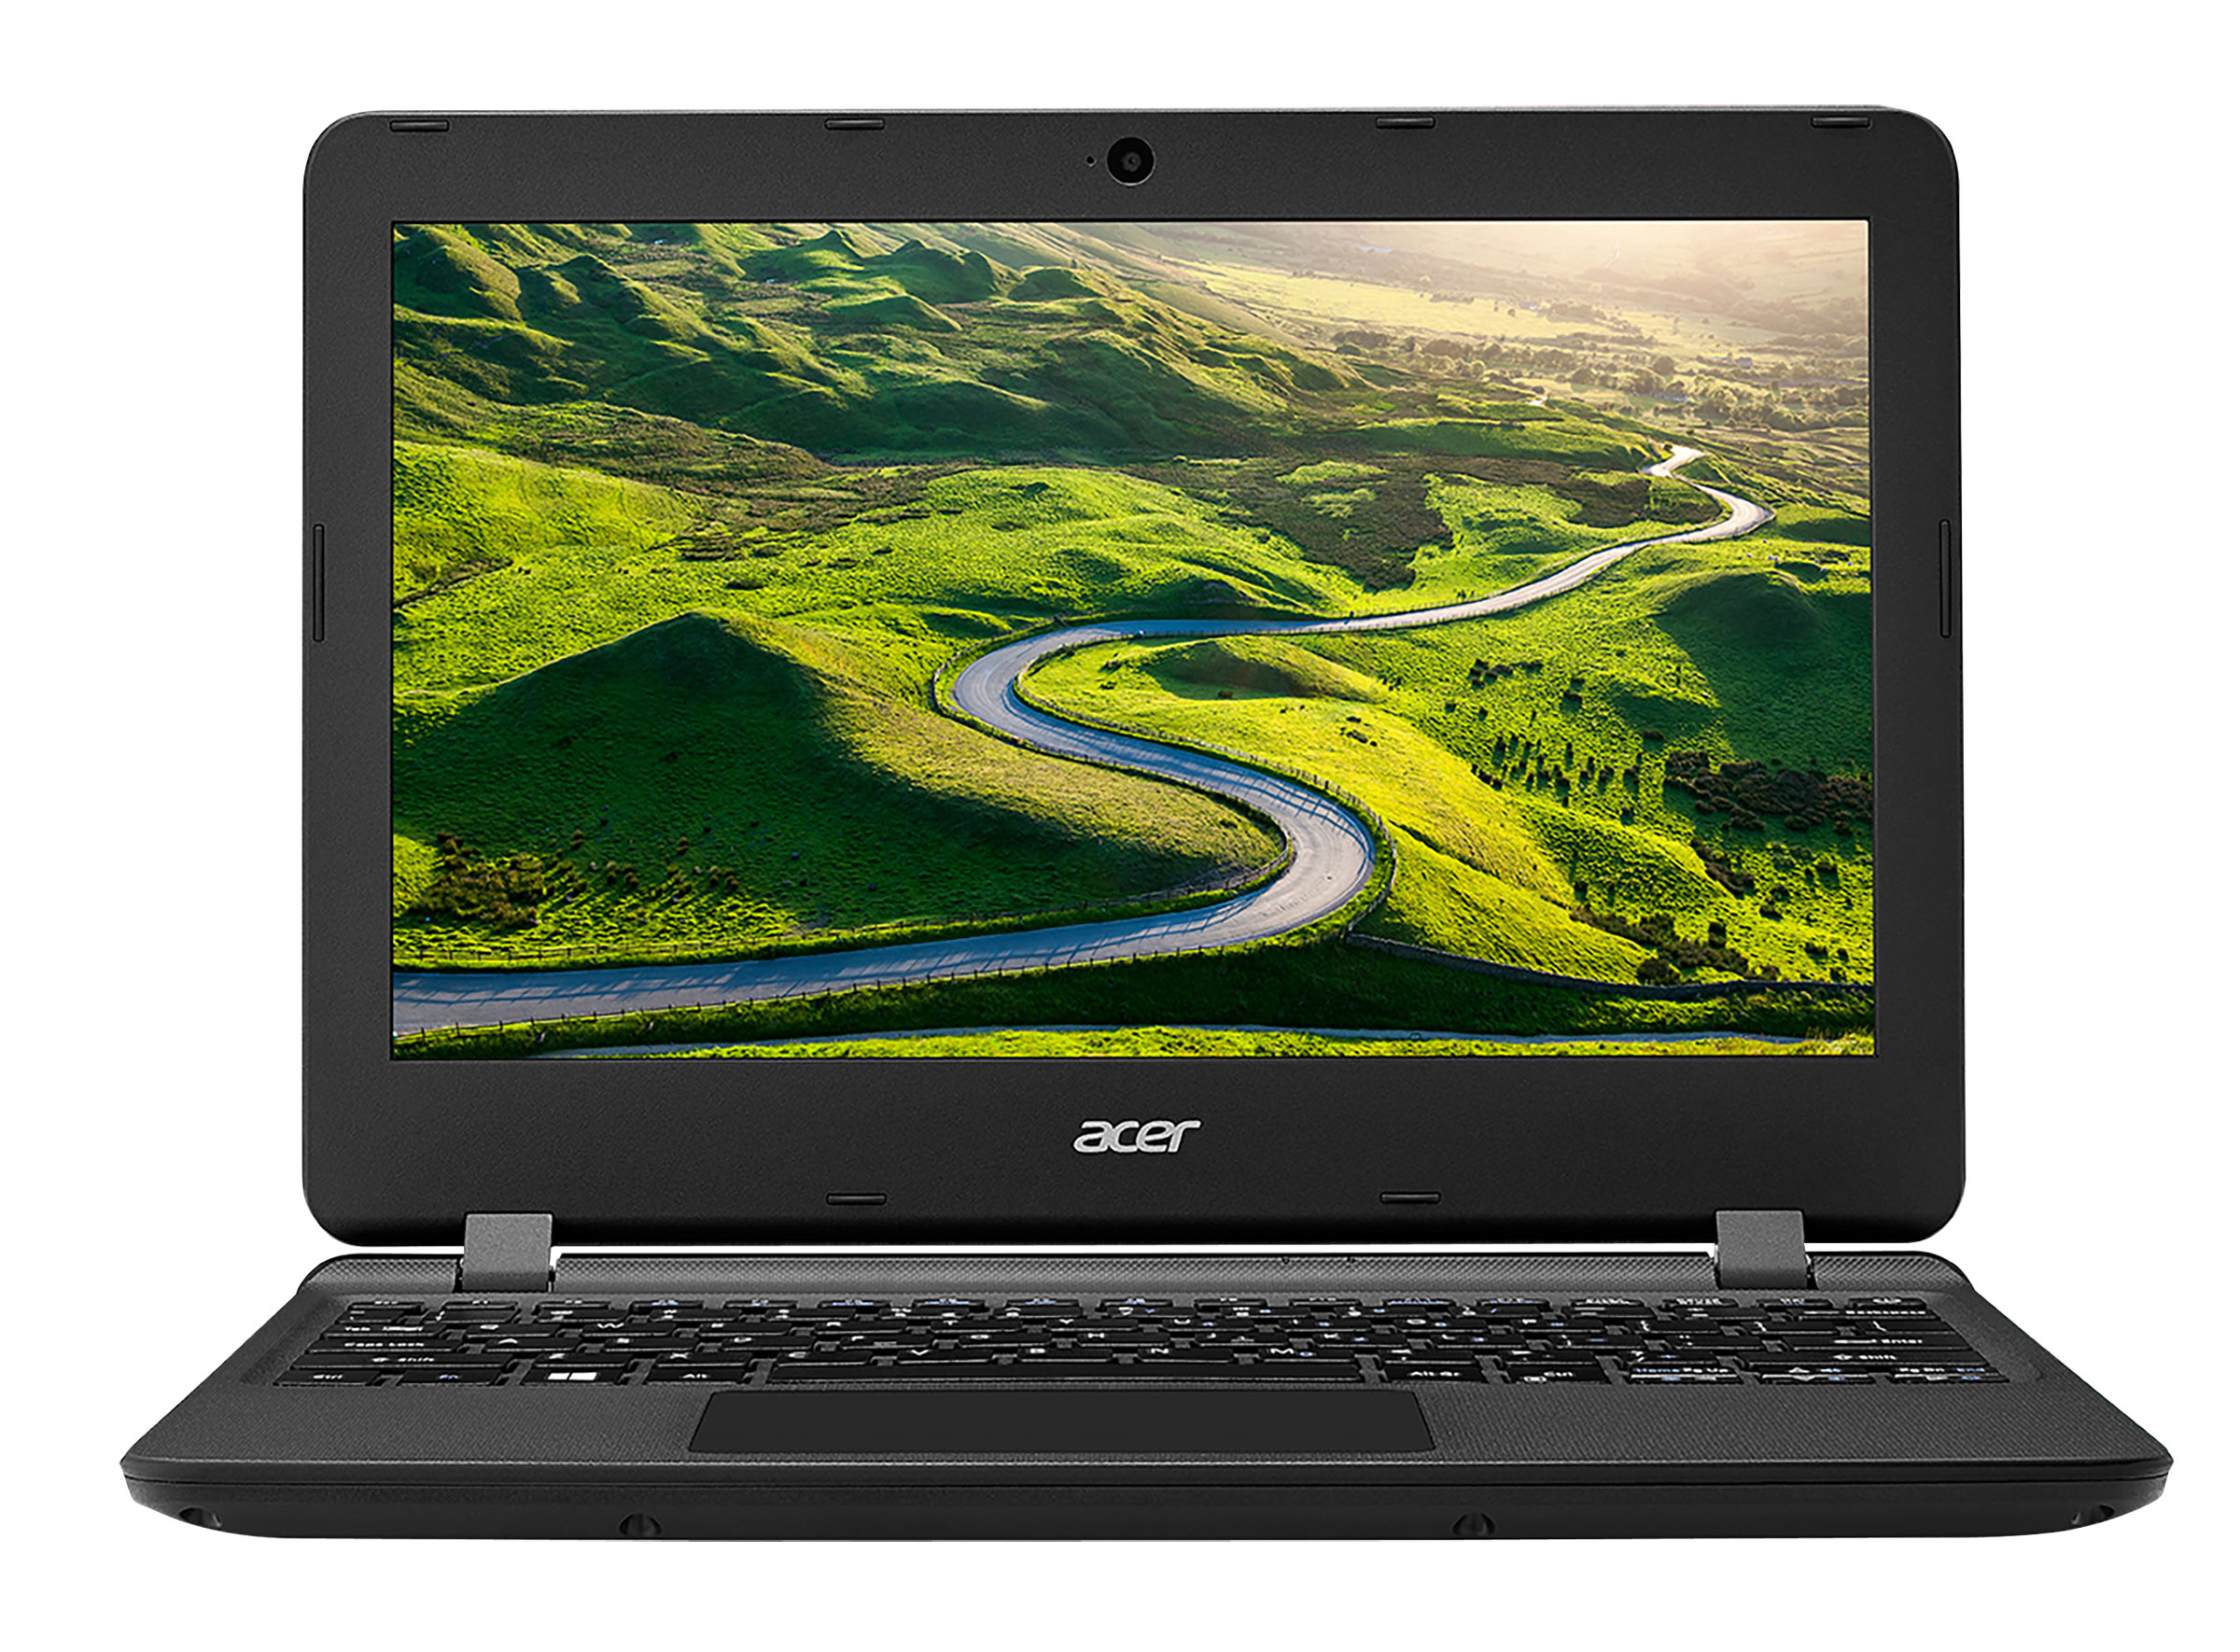 Acer Aspire ES 11 ES1-132-C37M Intel Celeron 32GB SSD 4GB RAM 116 Notebook